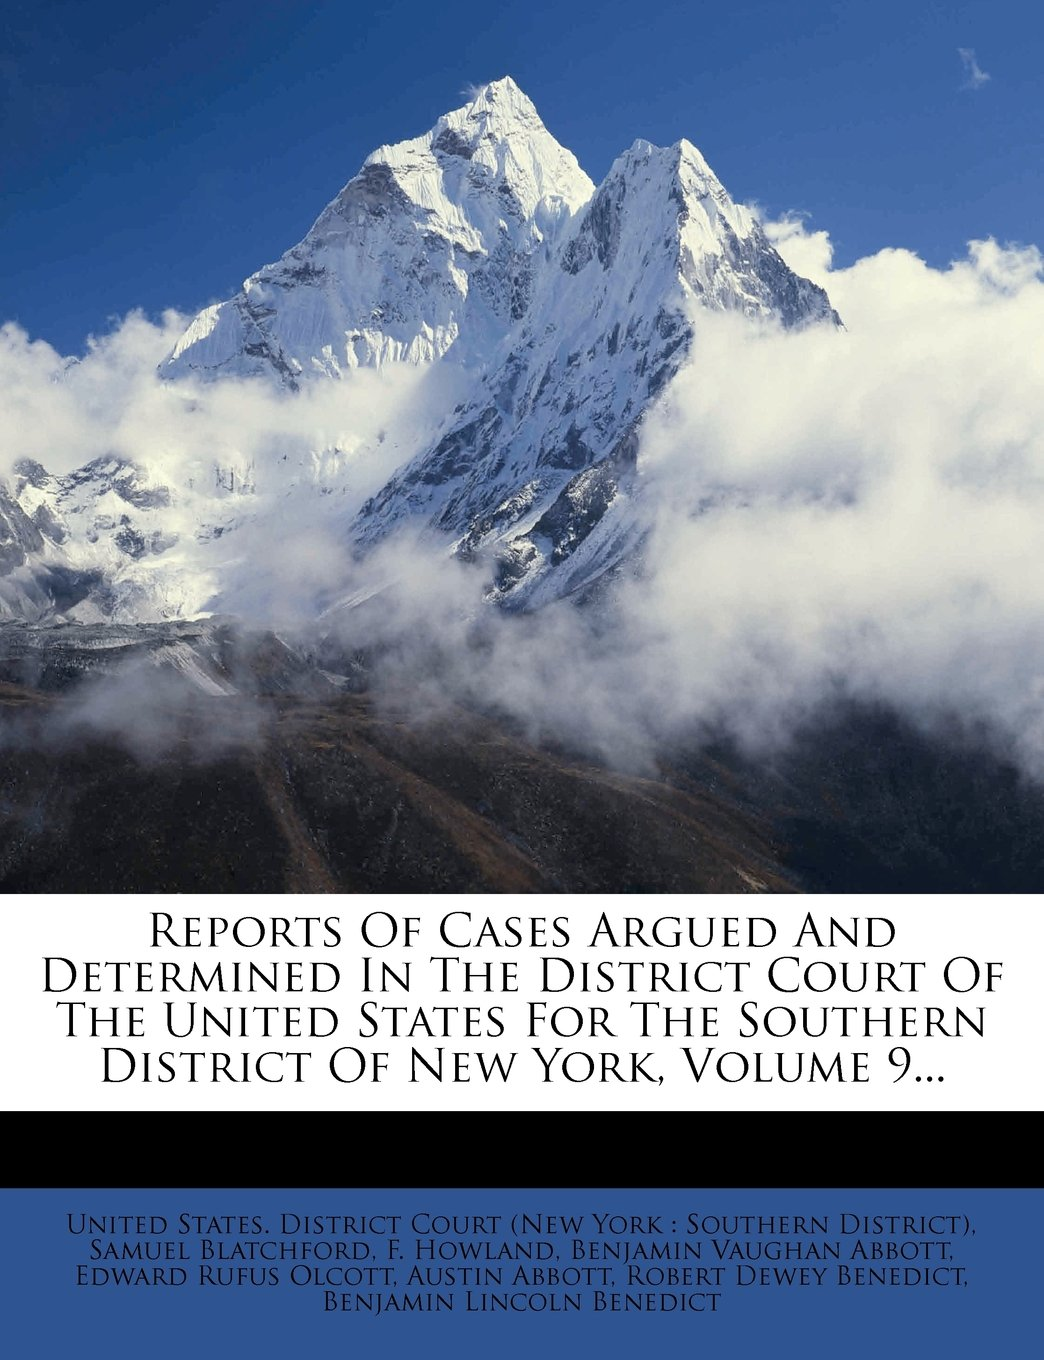 Download Reports Of Cases Argued And Determined In The District Court Of The United States For The Southern District Of New York, Volume 9... pdf